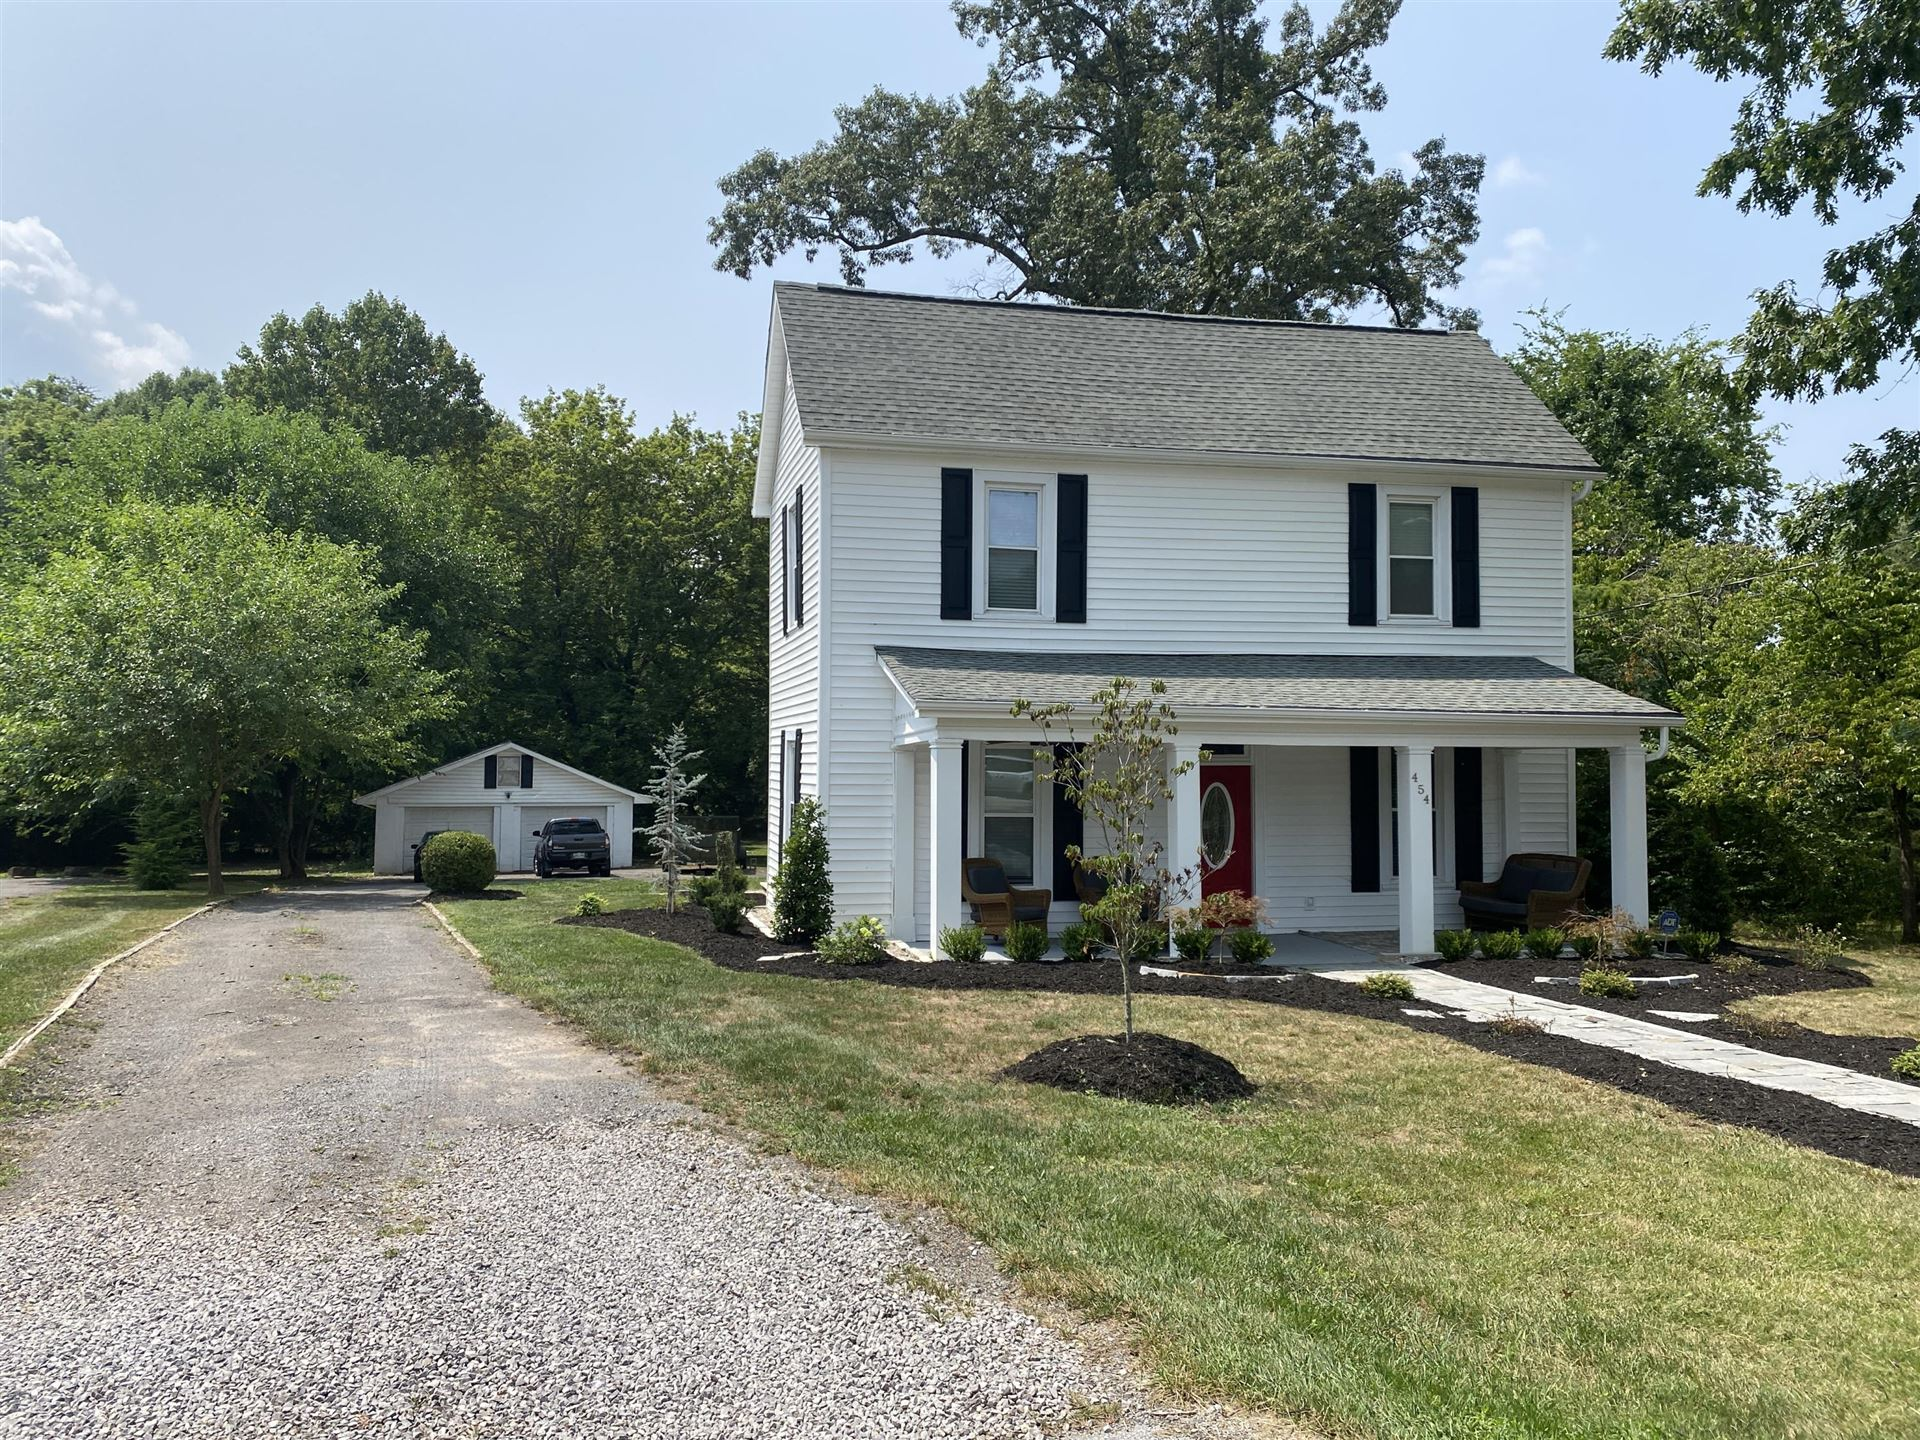 Photo of 454 Woodlawn Pike, Knoxville, TN 37920 (MLS # 1162509)